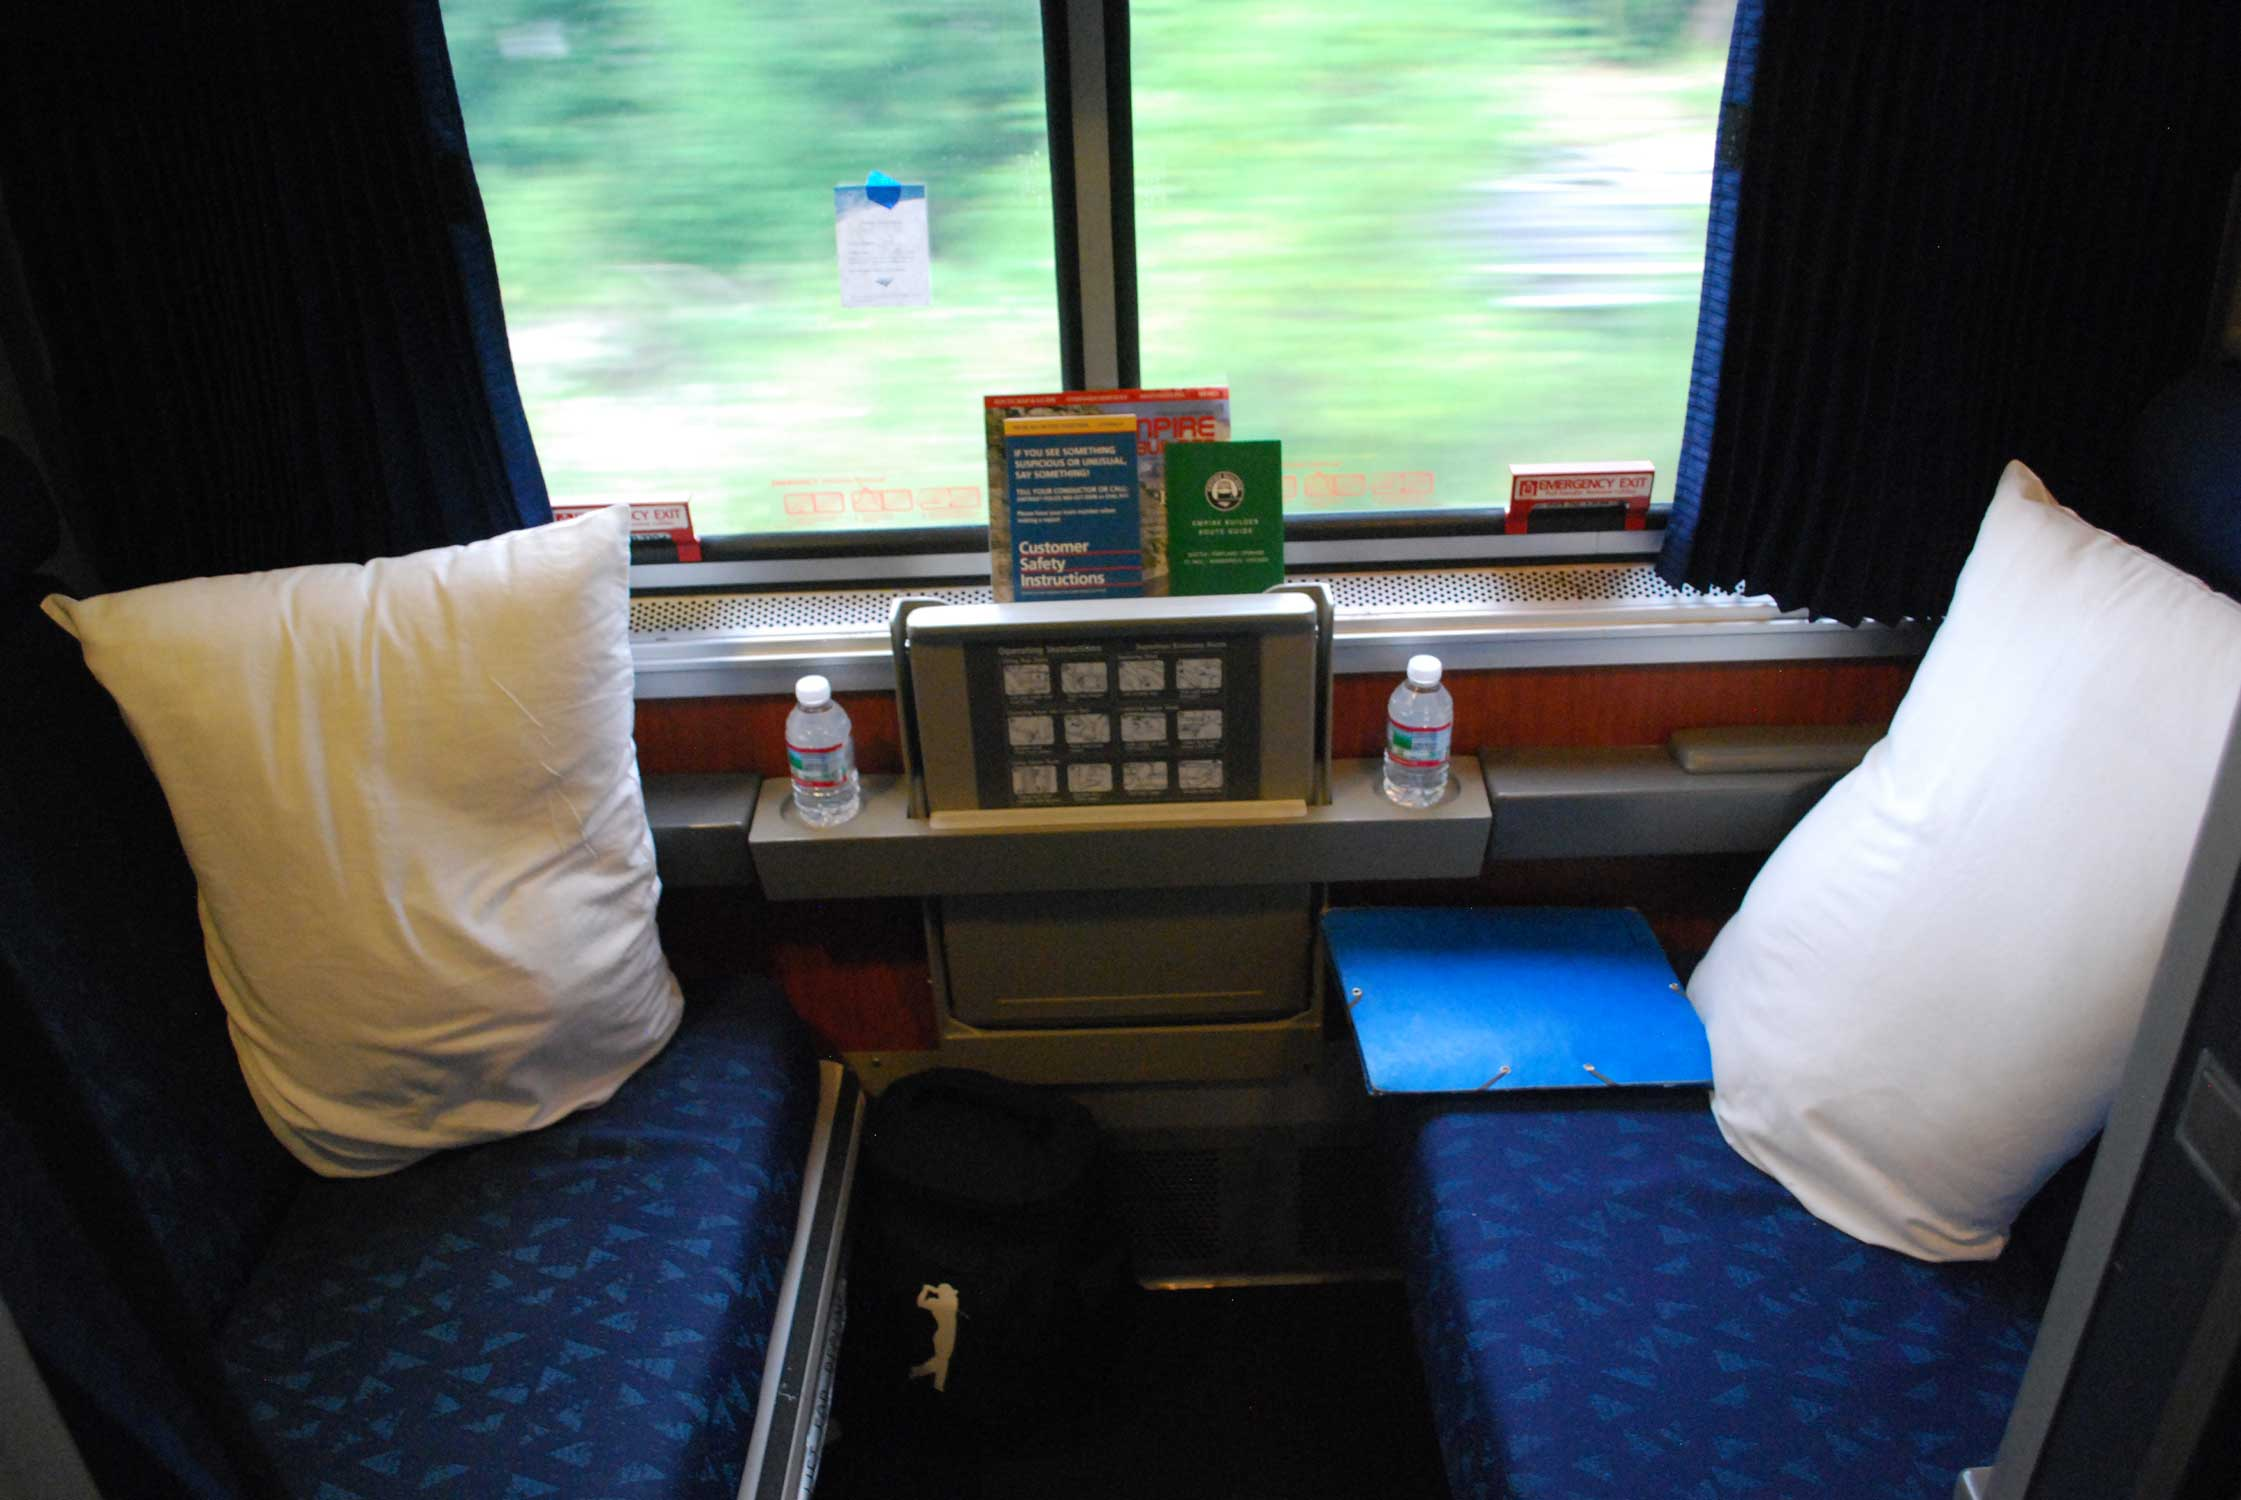 Photo looking into a small bunk room with two blue seats facing each other.